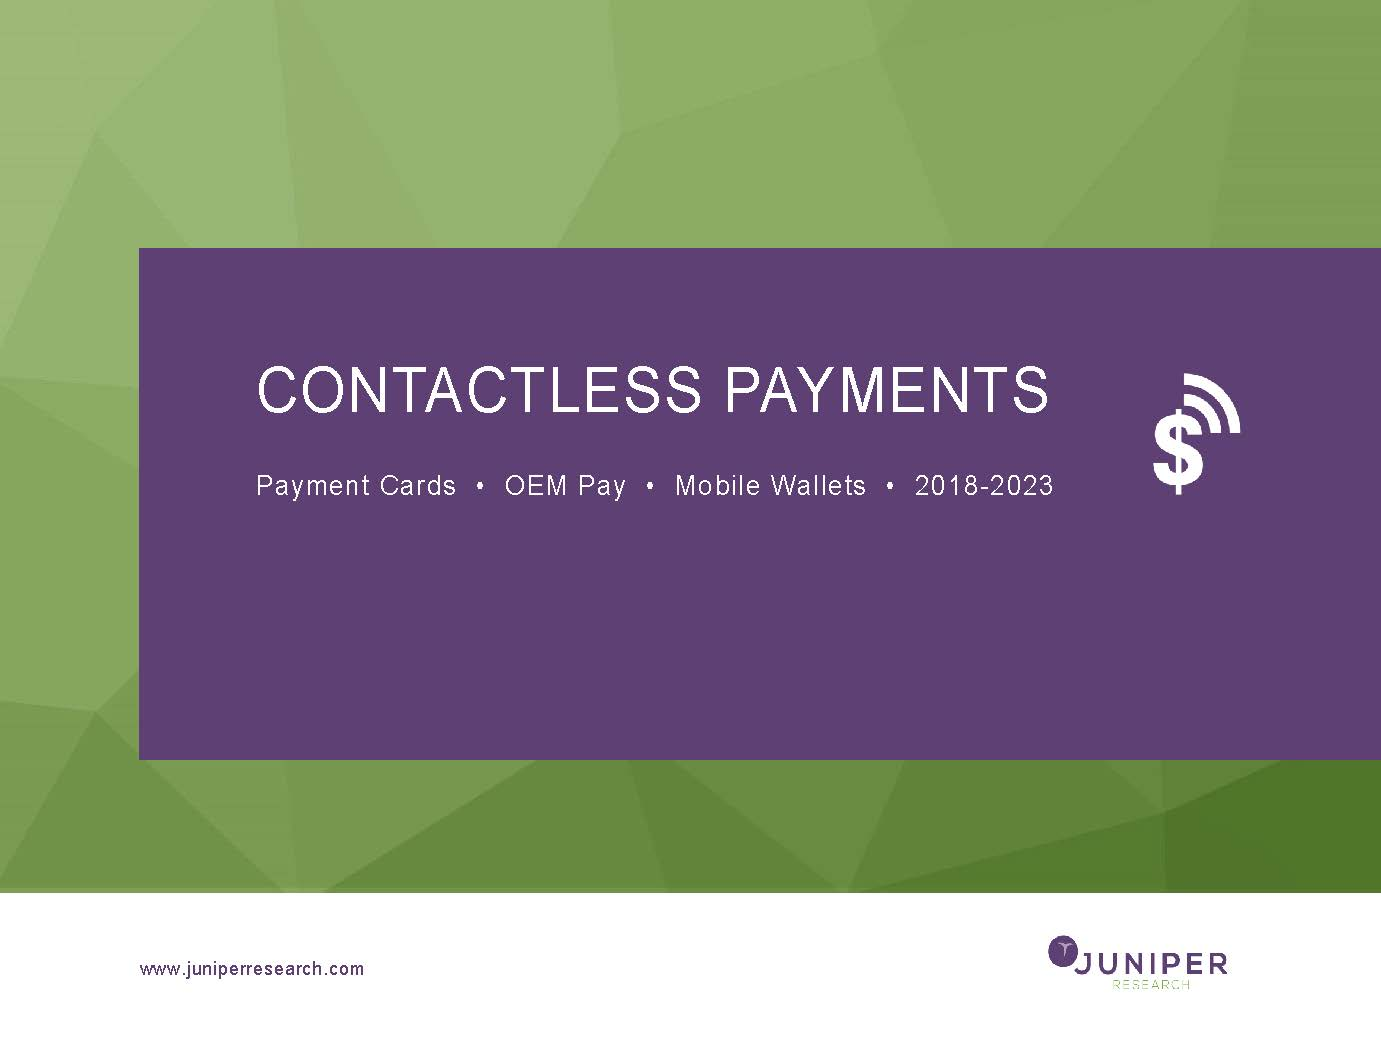 Contactless Payments - Full Research Suite